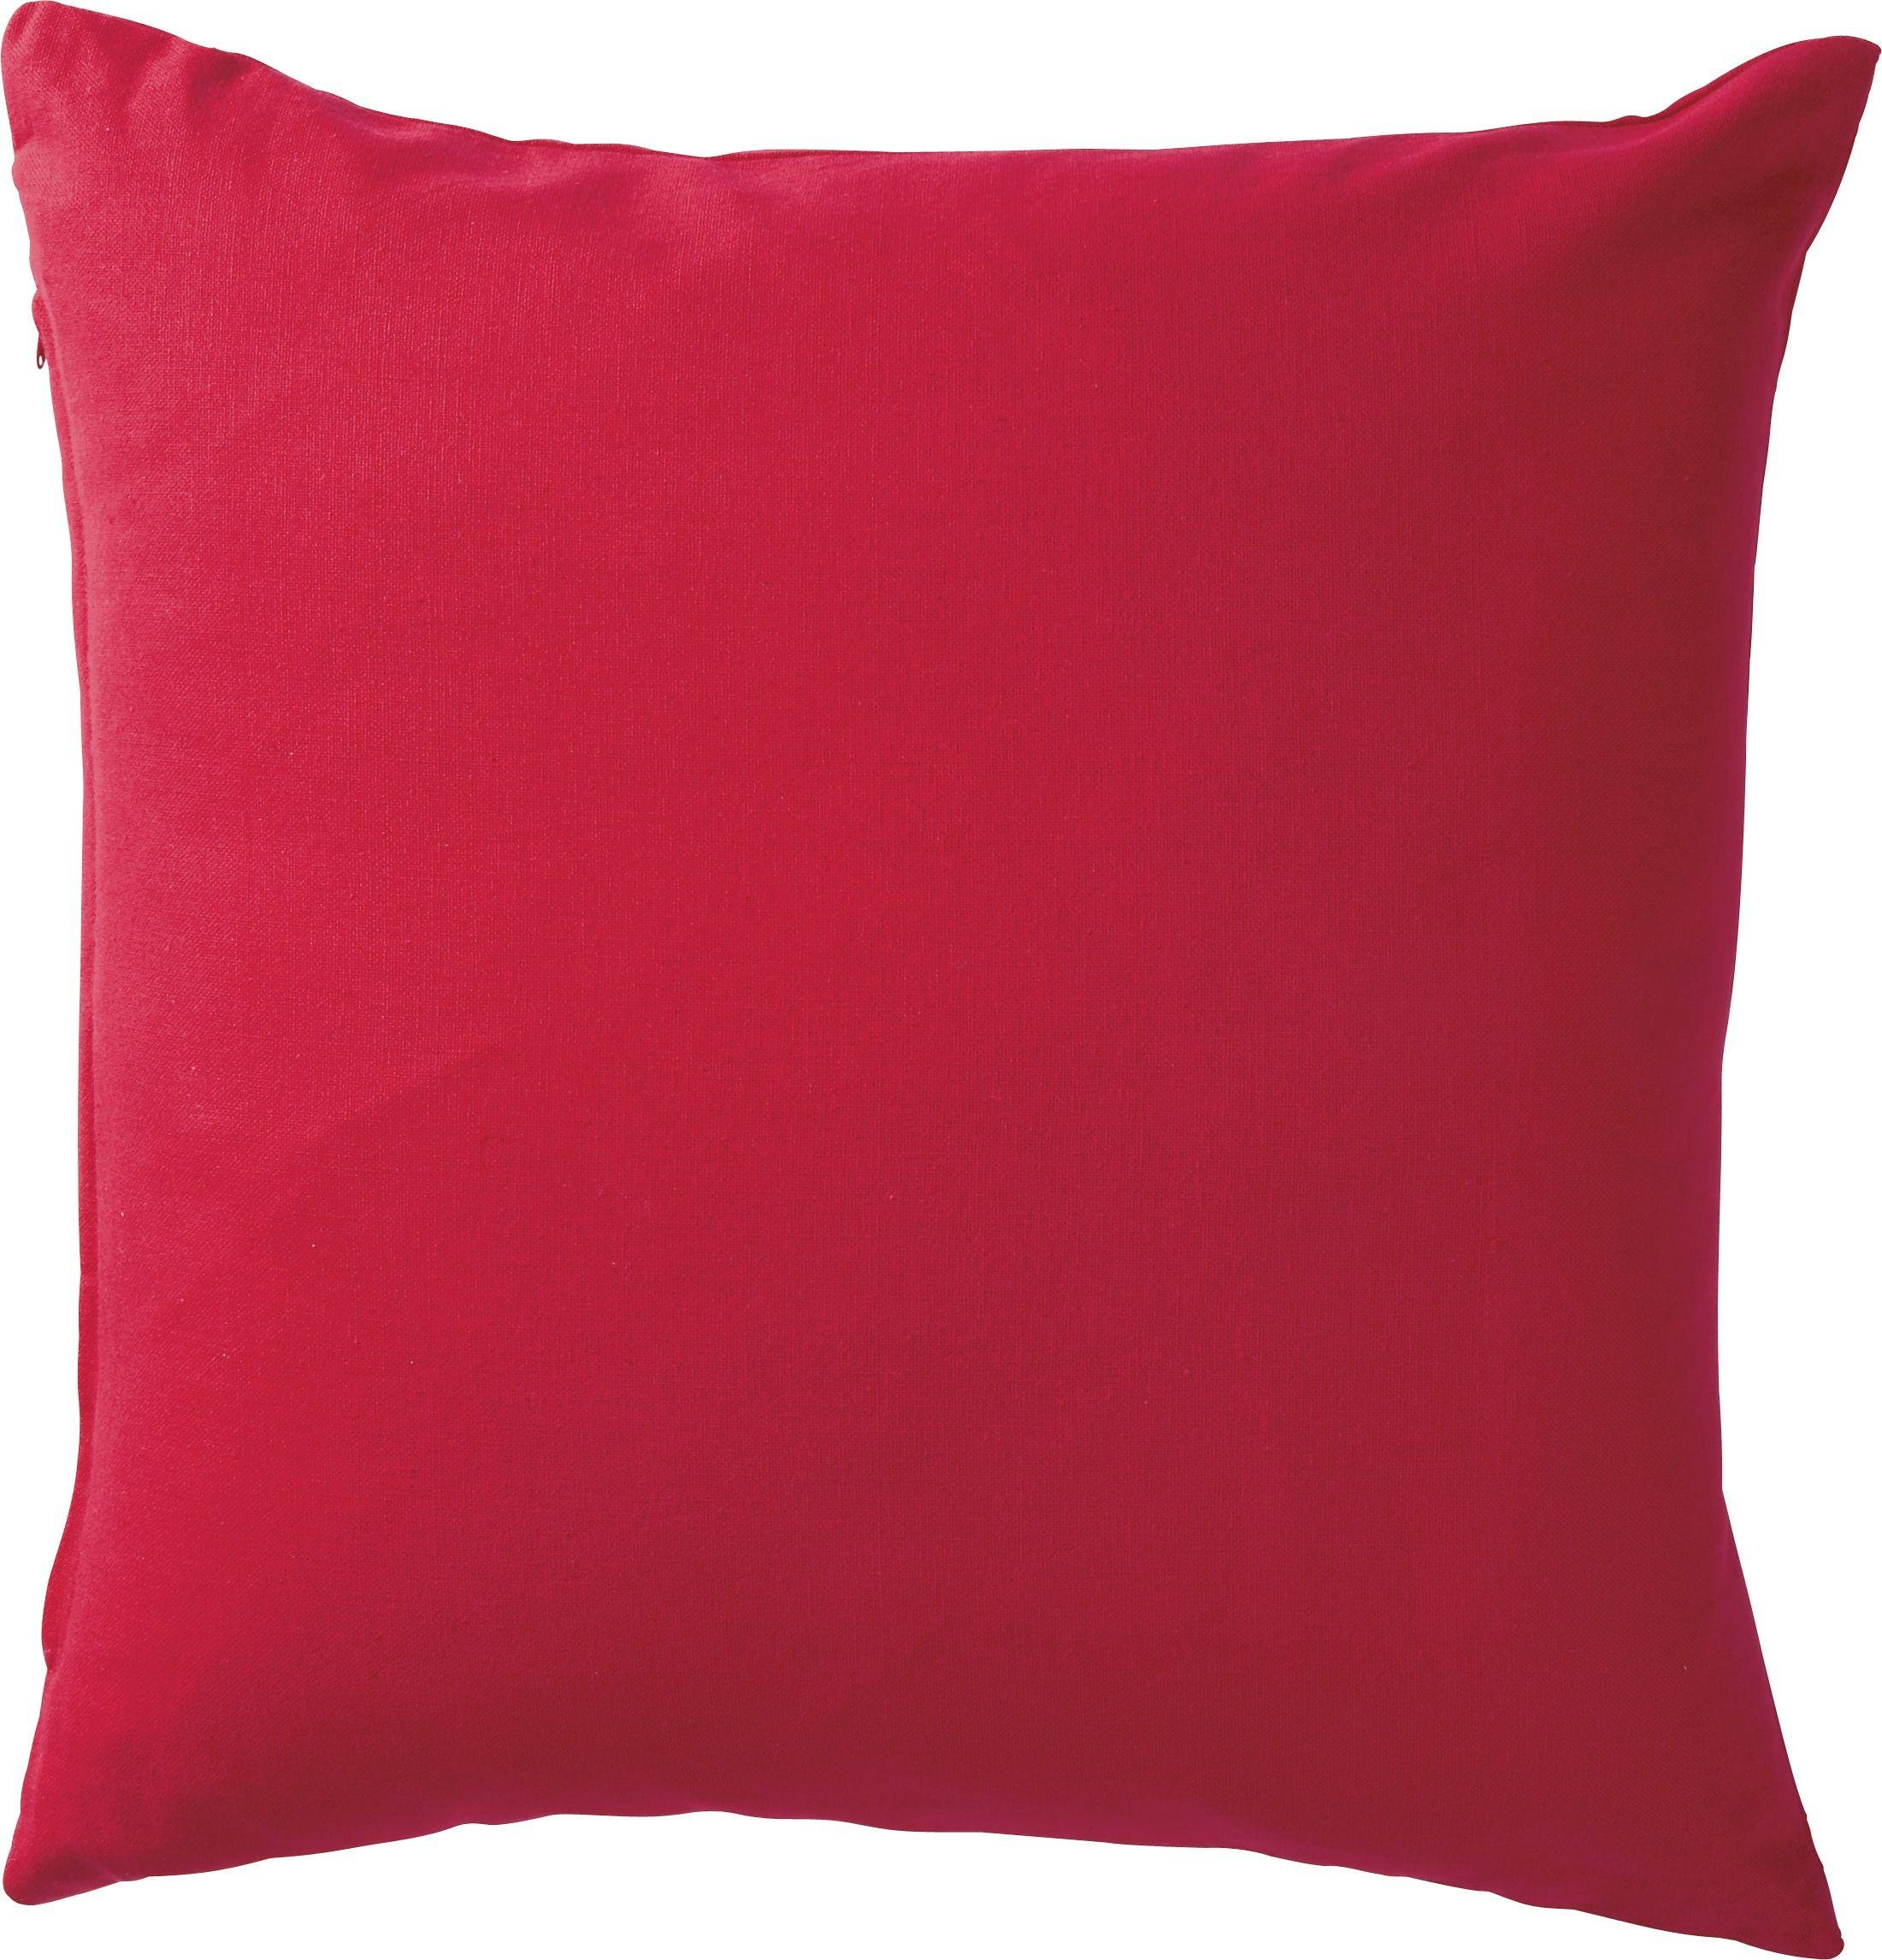 colourmatch cotton cushion poppy red at argos. Black Bedroom Furniture Sets. Home Design Ideas